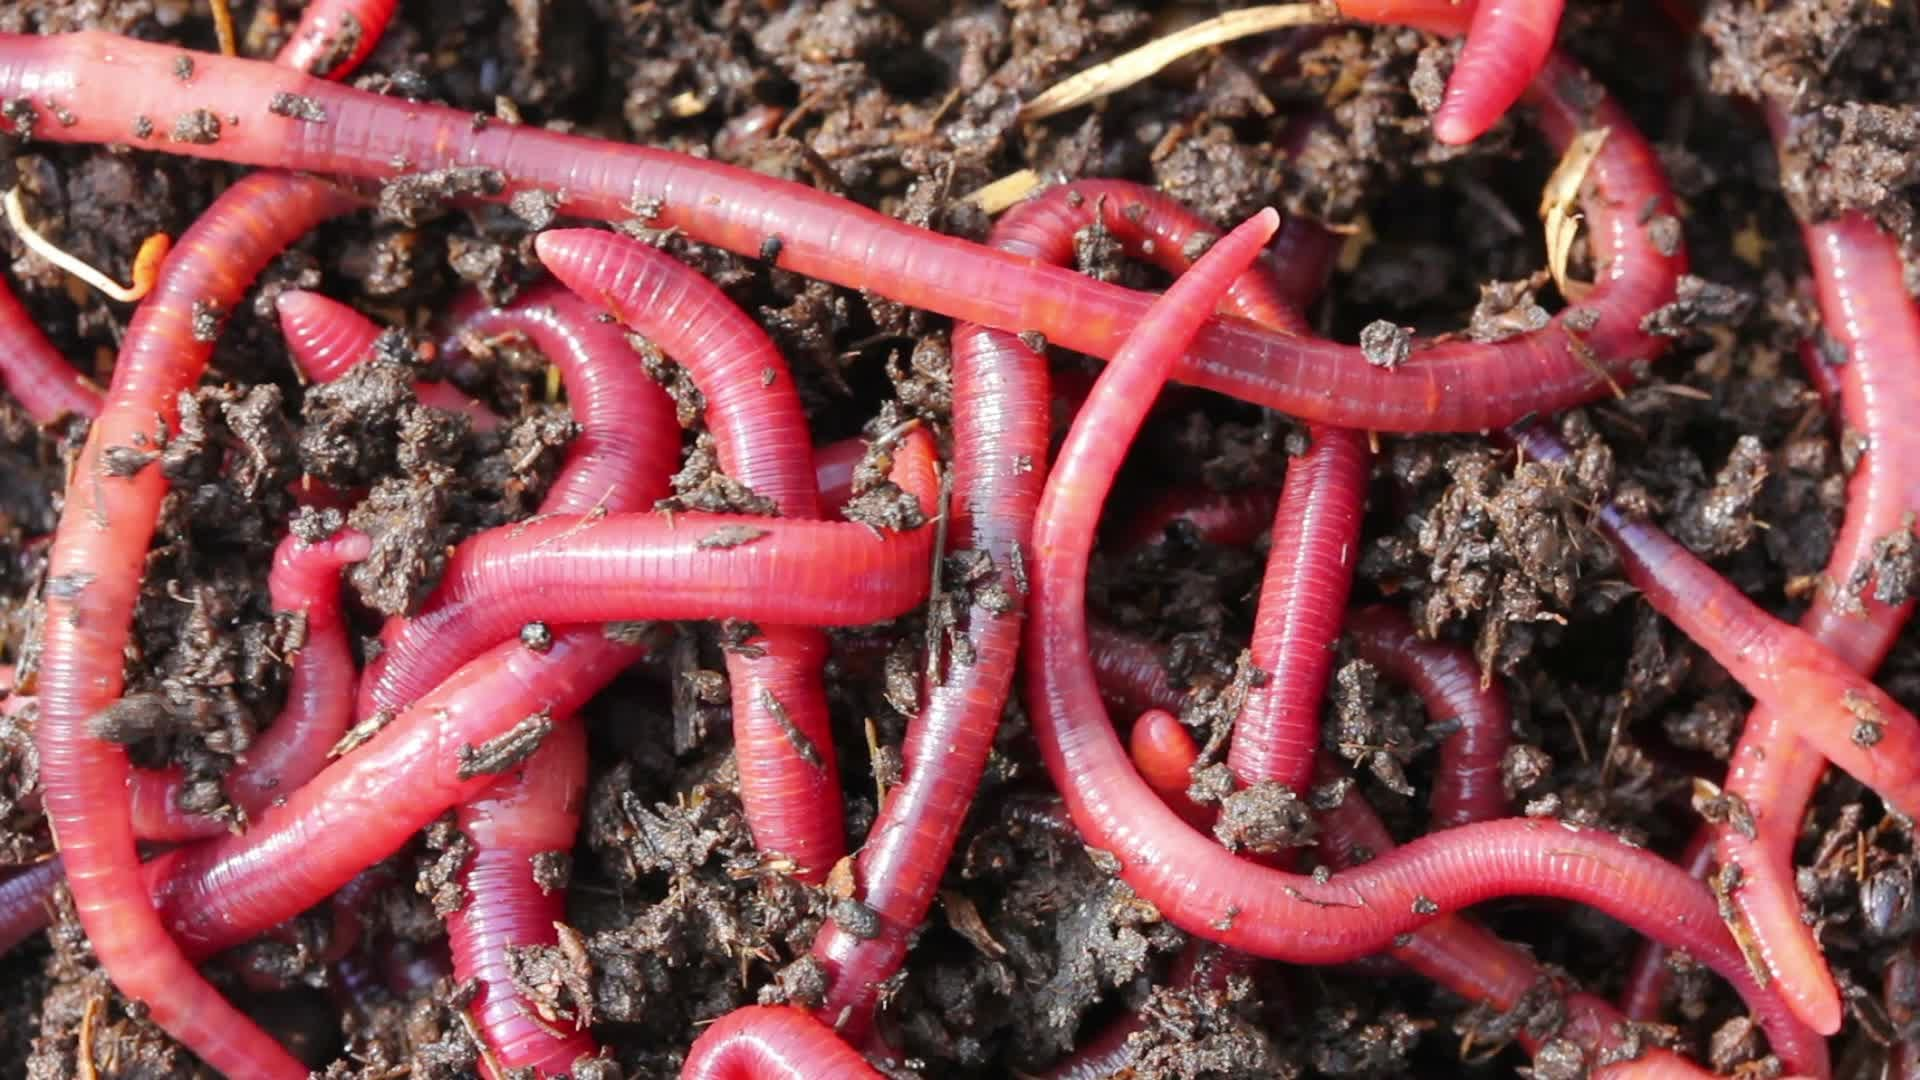 Red Worms for fishing in Oregon